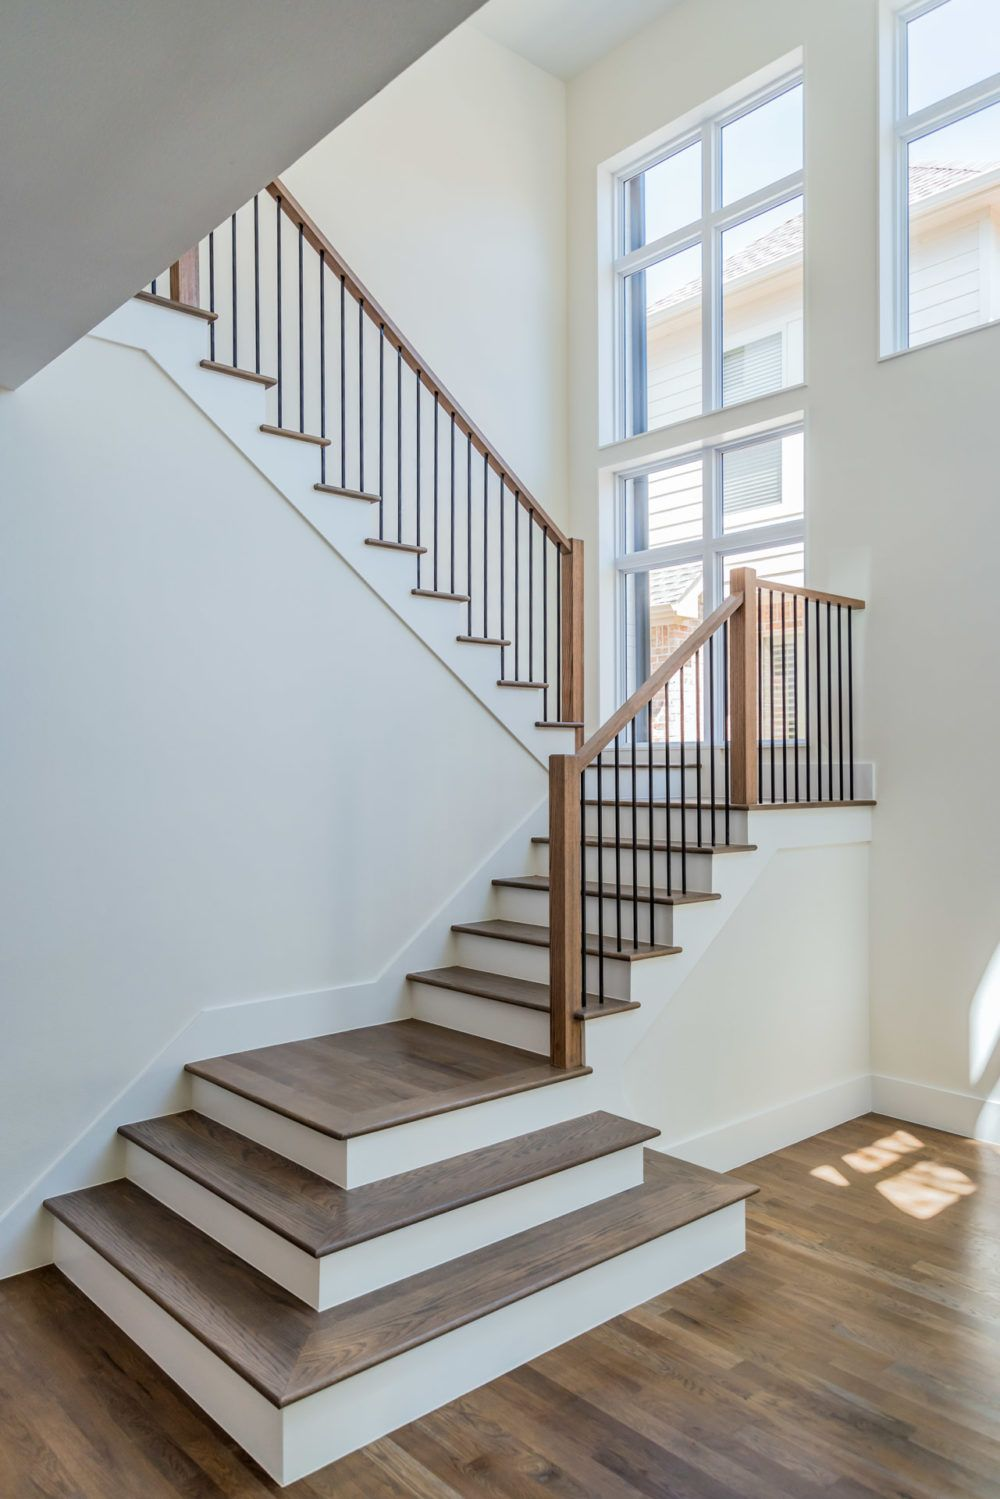 Clean Modern Lines Warm Wood Meets Metal Tons Of Natural Light Through The Window So Much To Love Ab Stair Railing Design Rustic Stairs Modern Stair Railing